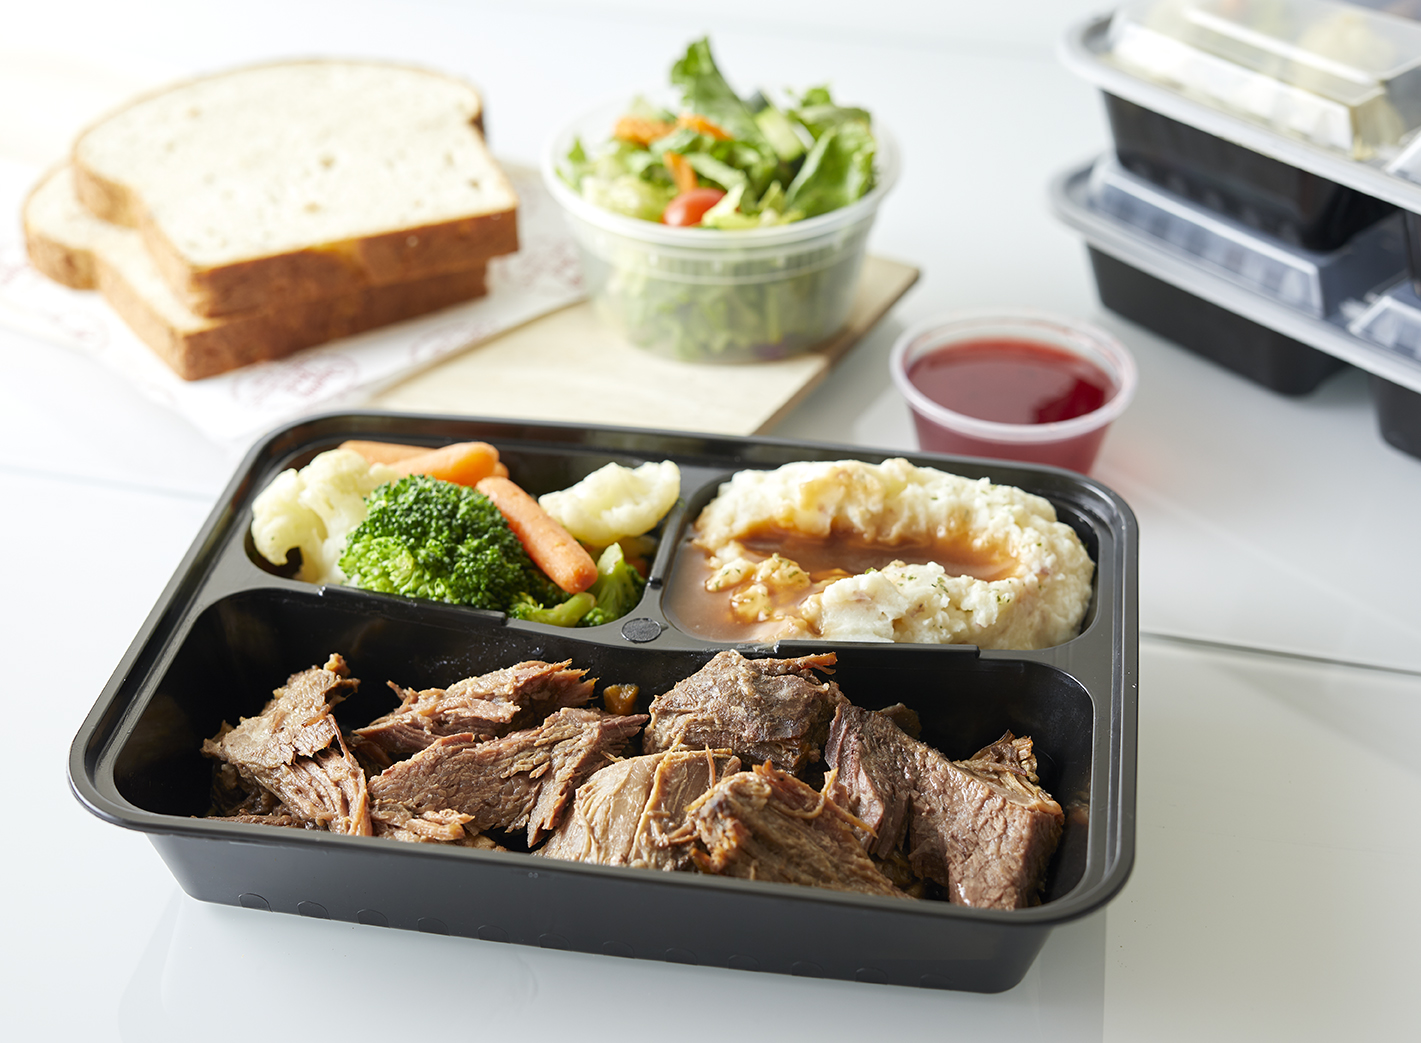 Apple Spice Boxed Roast Beef Catering Entrée